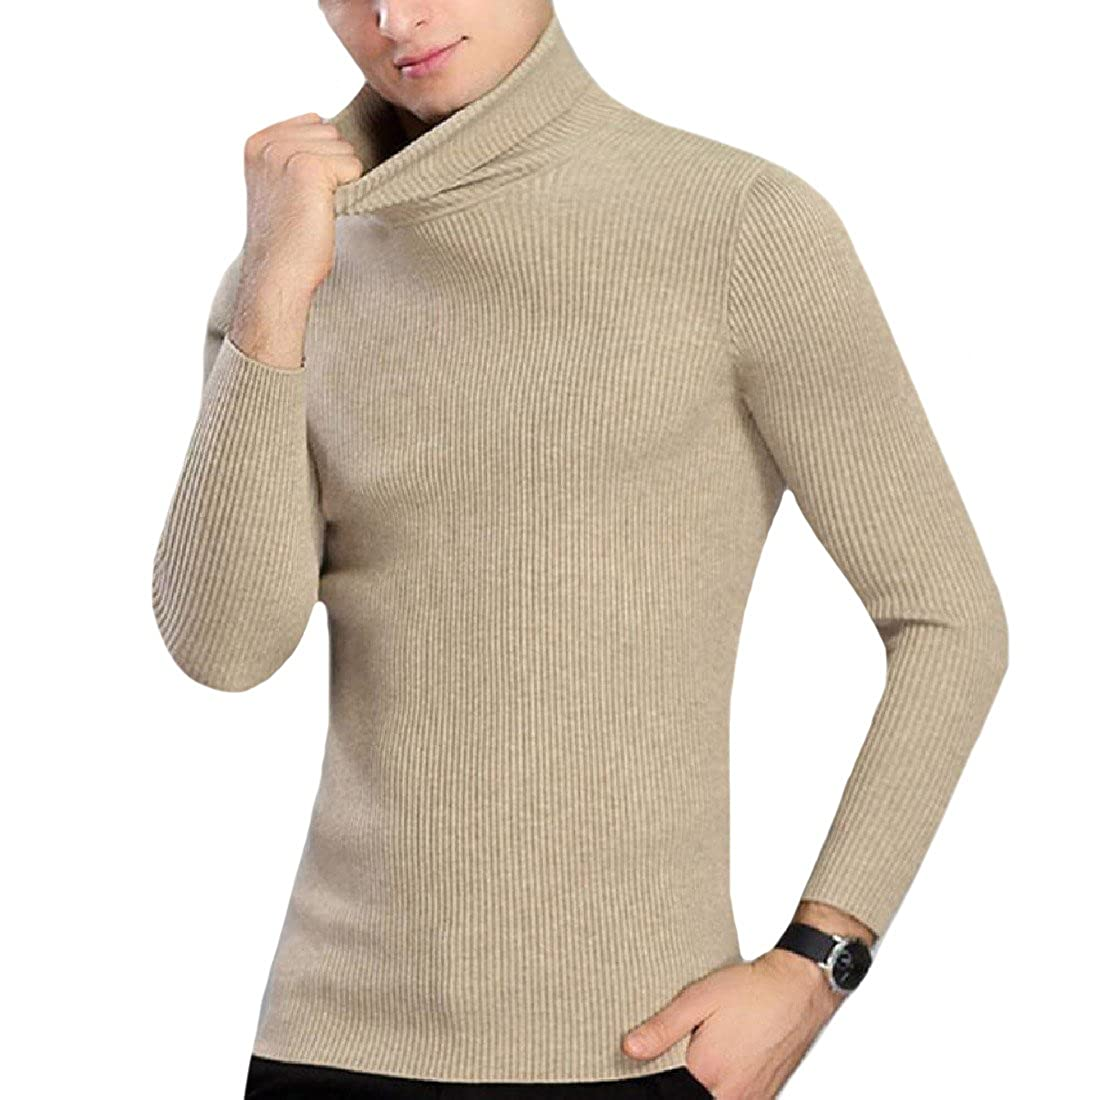 Abetteric Mens Turtleneck Breathable Wool and Warm Handsome Jumper